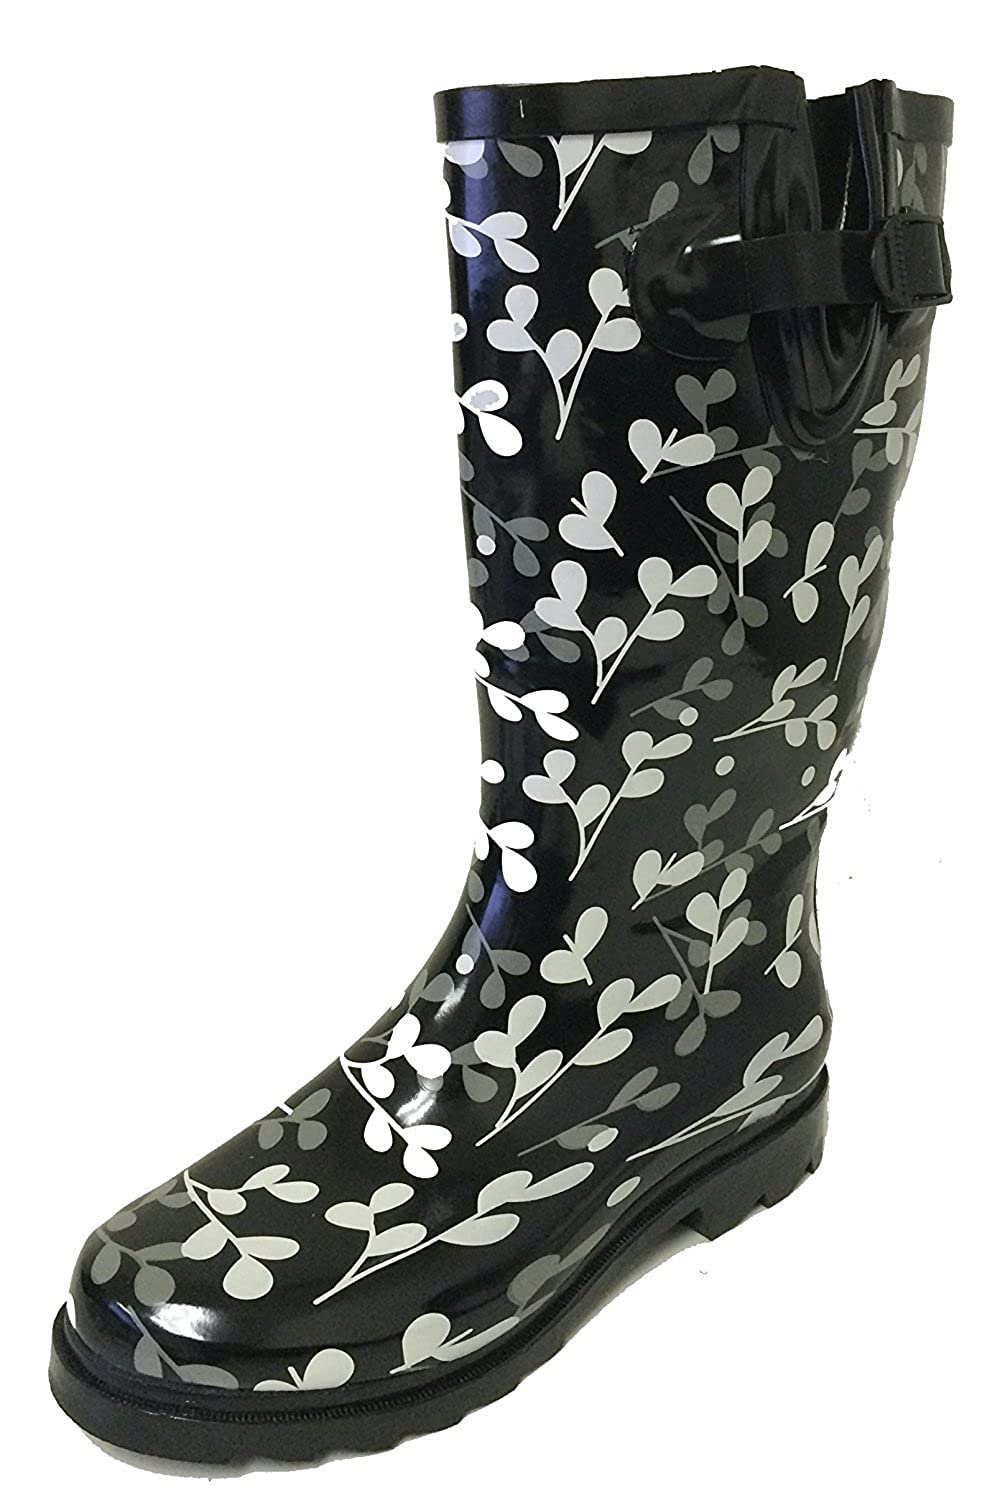 Black Leaf G4U Women's Rain Boots Multiple Styles color Mid Calf Wellies Buckle Fashion Rubber Knee High Snow shoes